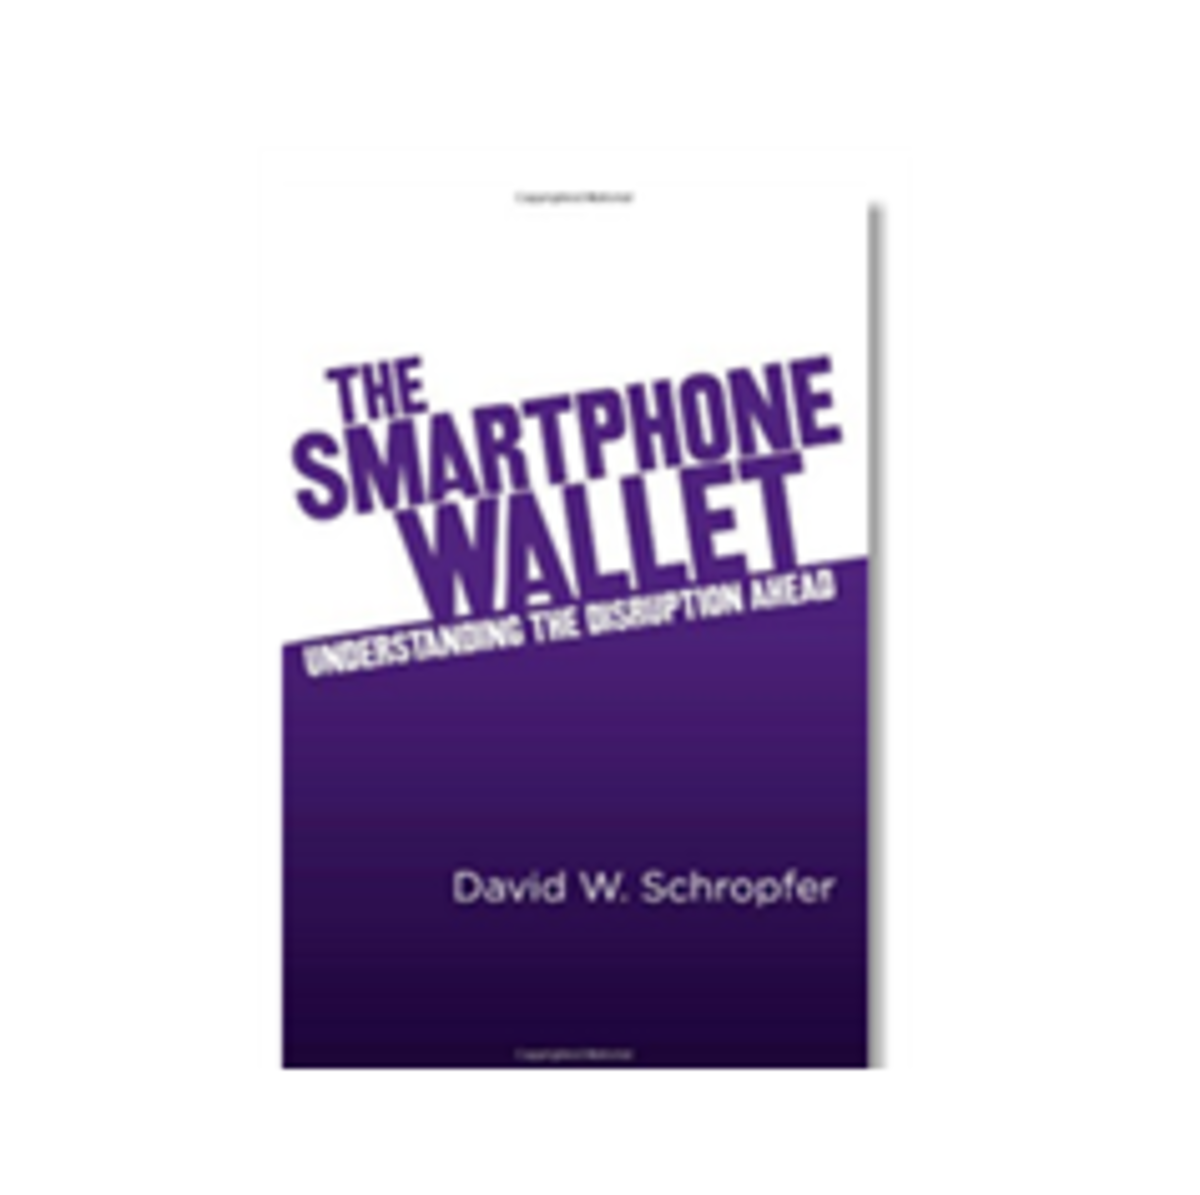 The Smartphone Wallet